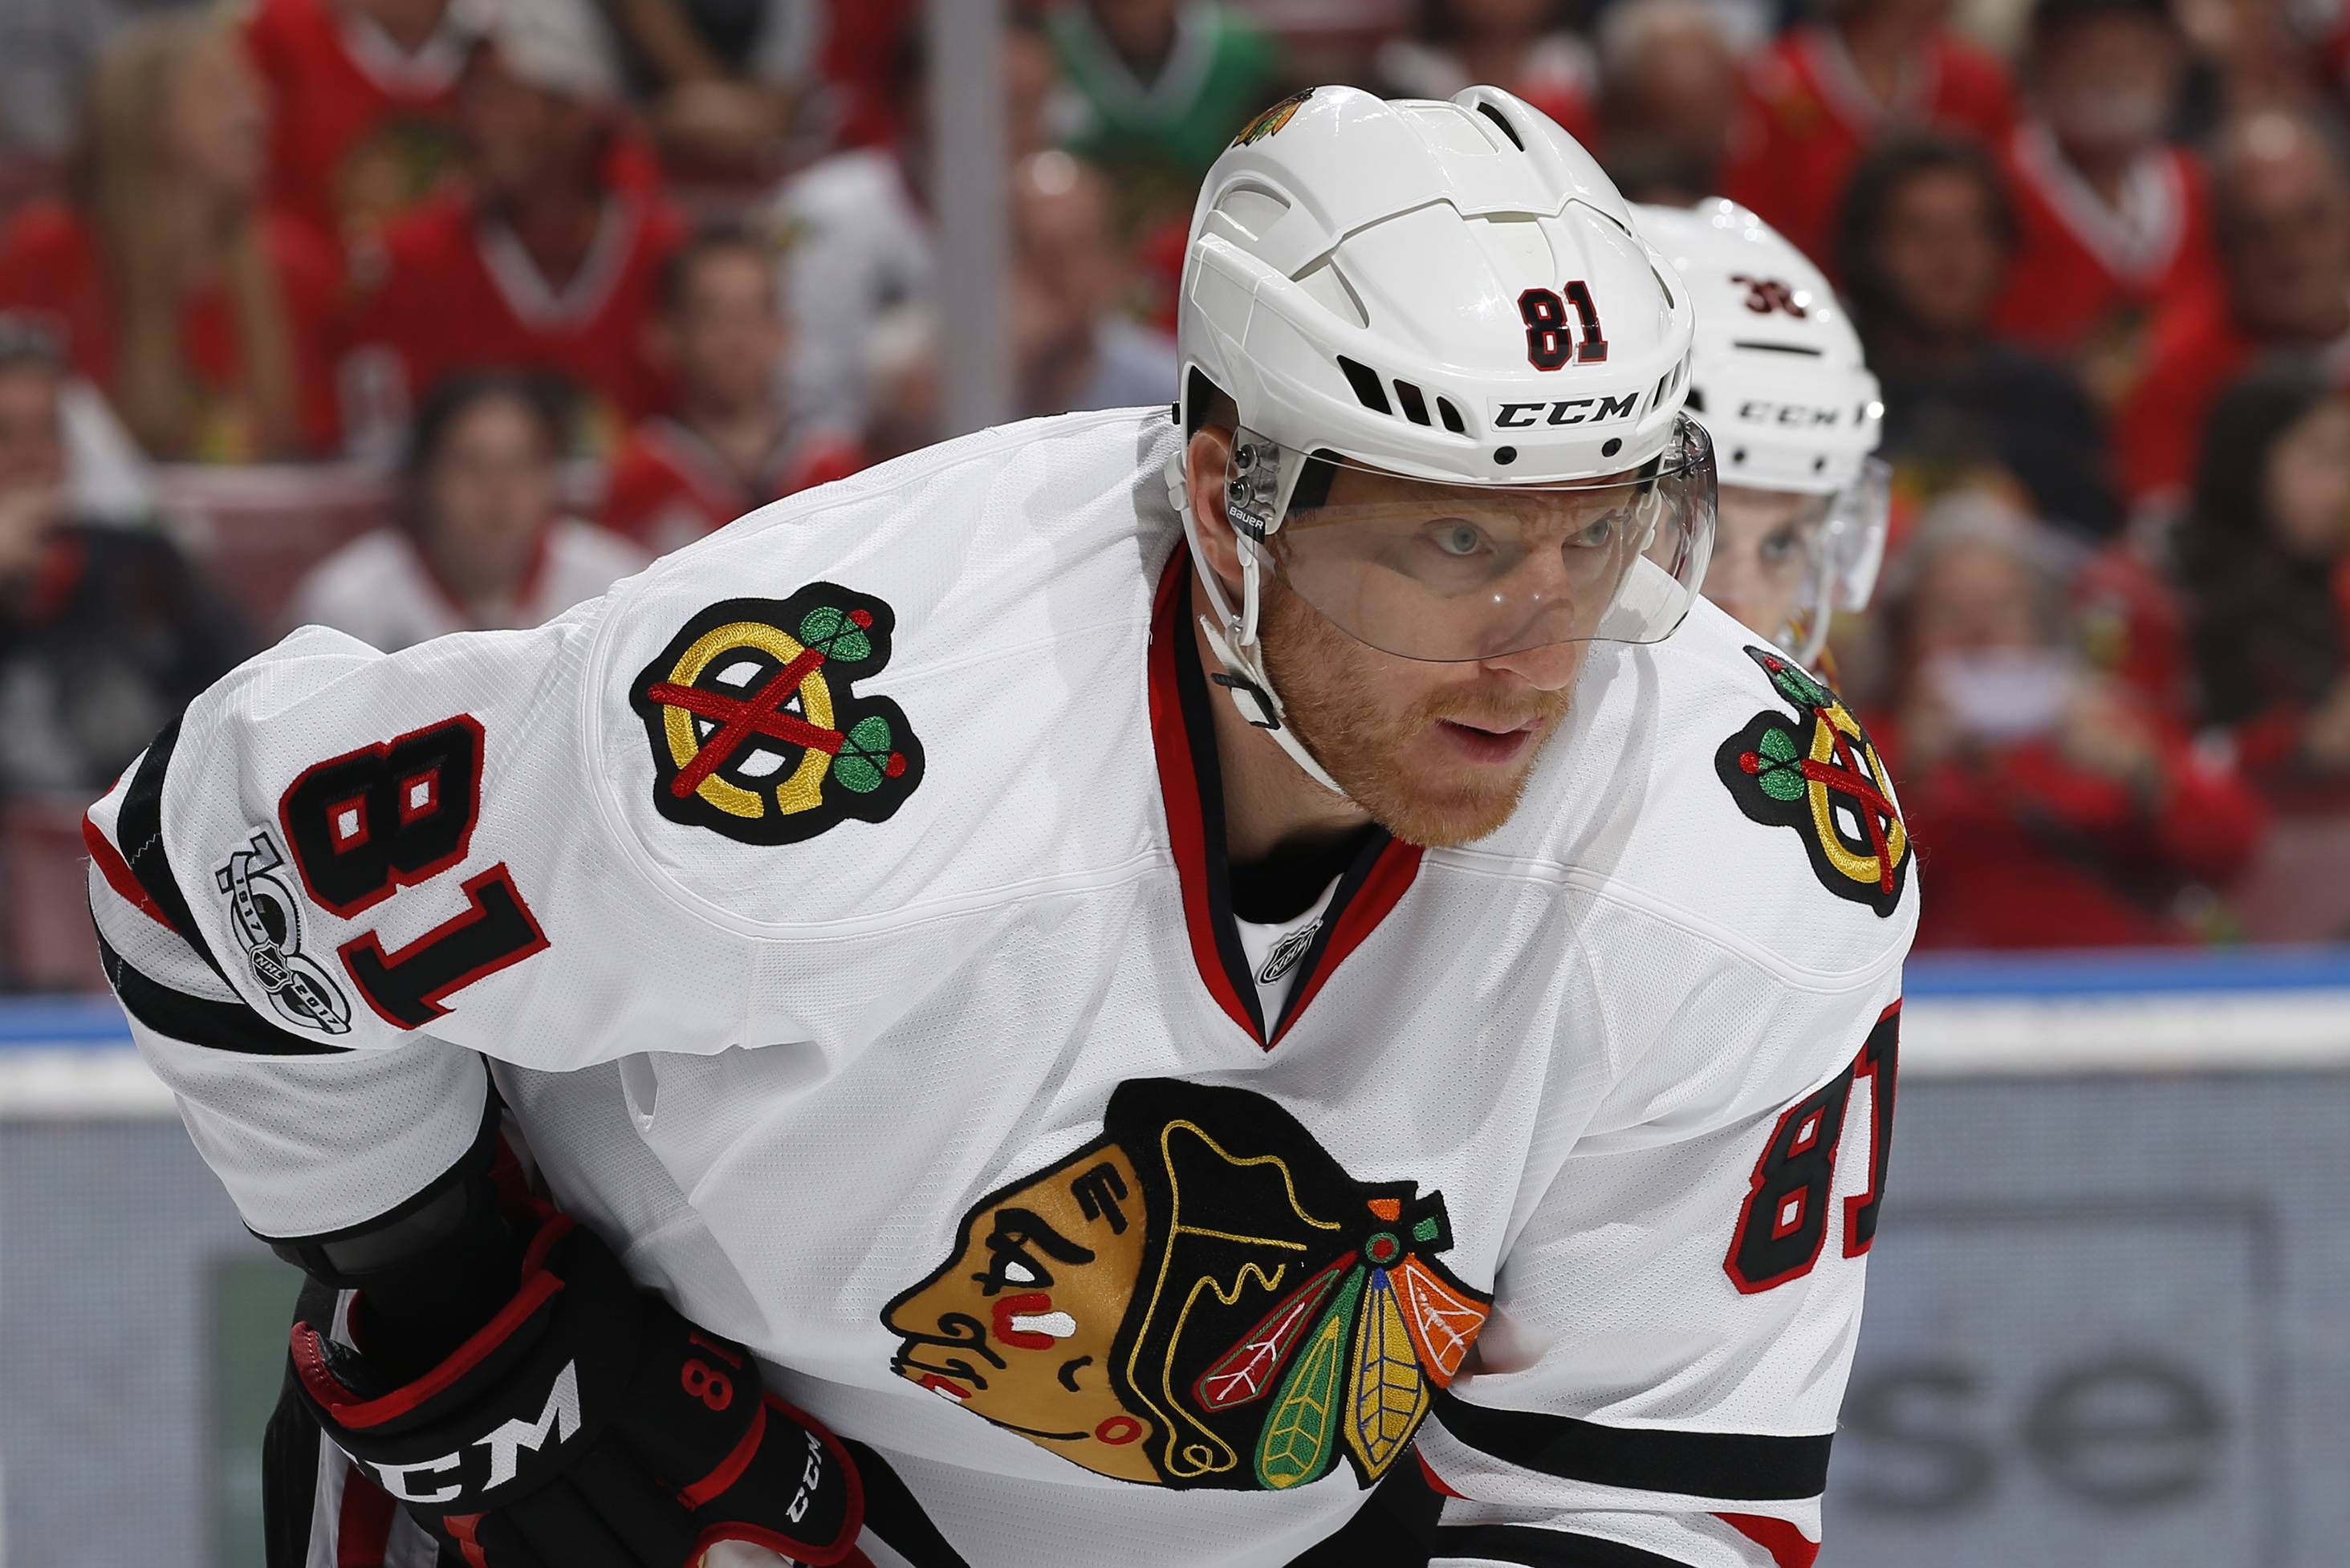 Chicago Blackhawks right wing Marian Hossa Hossa is one of the veteran players missing as the team opens training camp. Hossa will miss the entire 2017-18 season because of a progressive skin disorder.